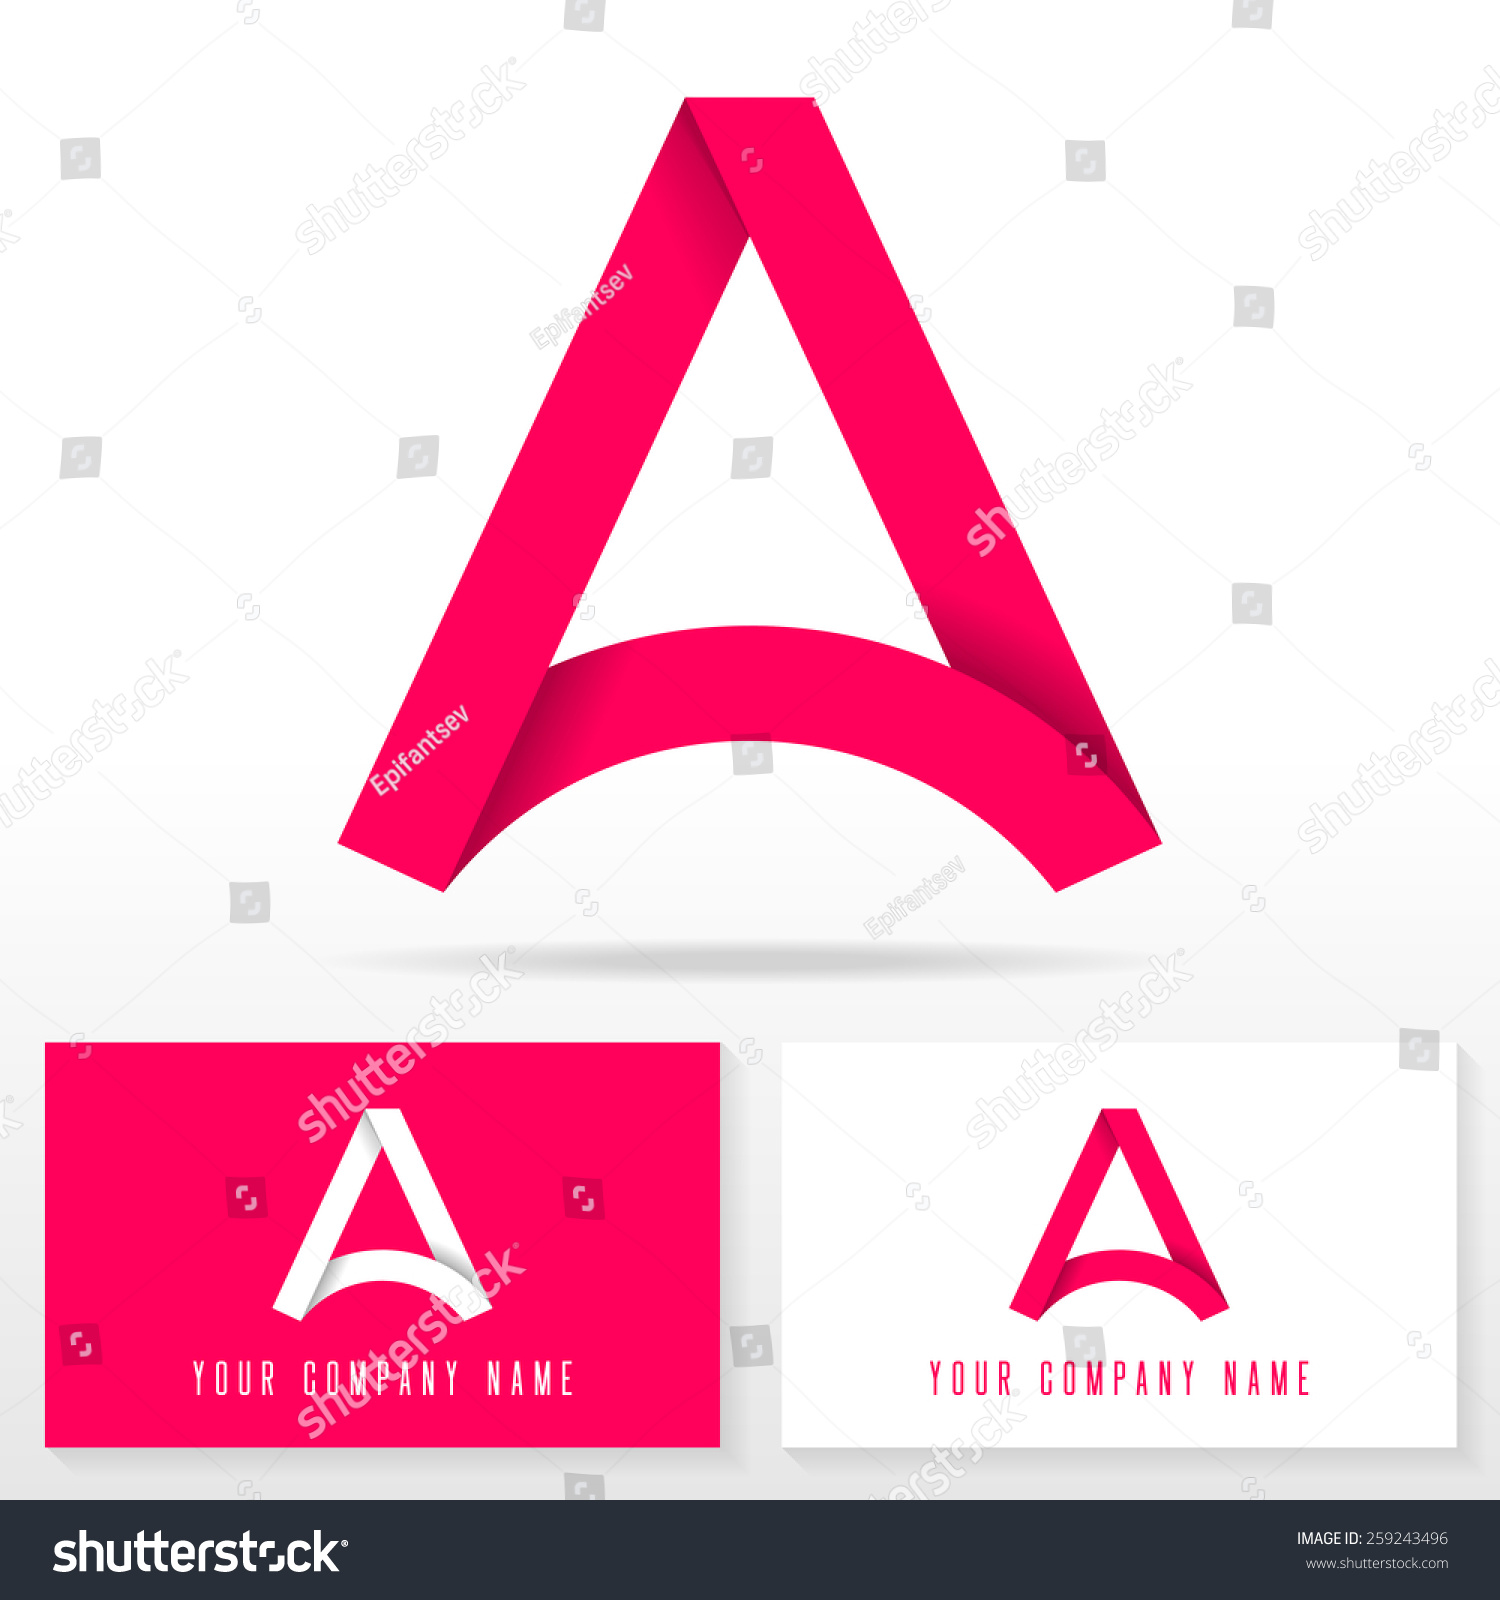 letter a logo icon design template elements vector sign business card templates